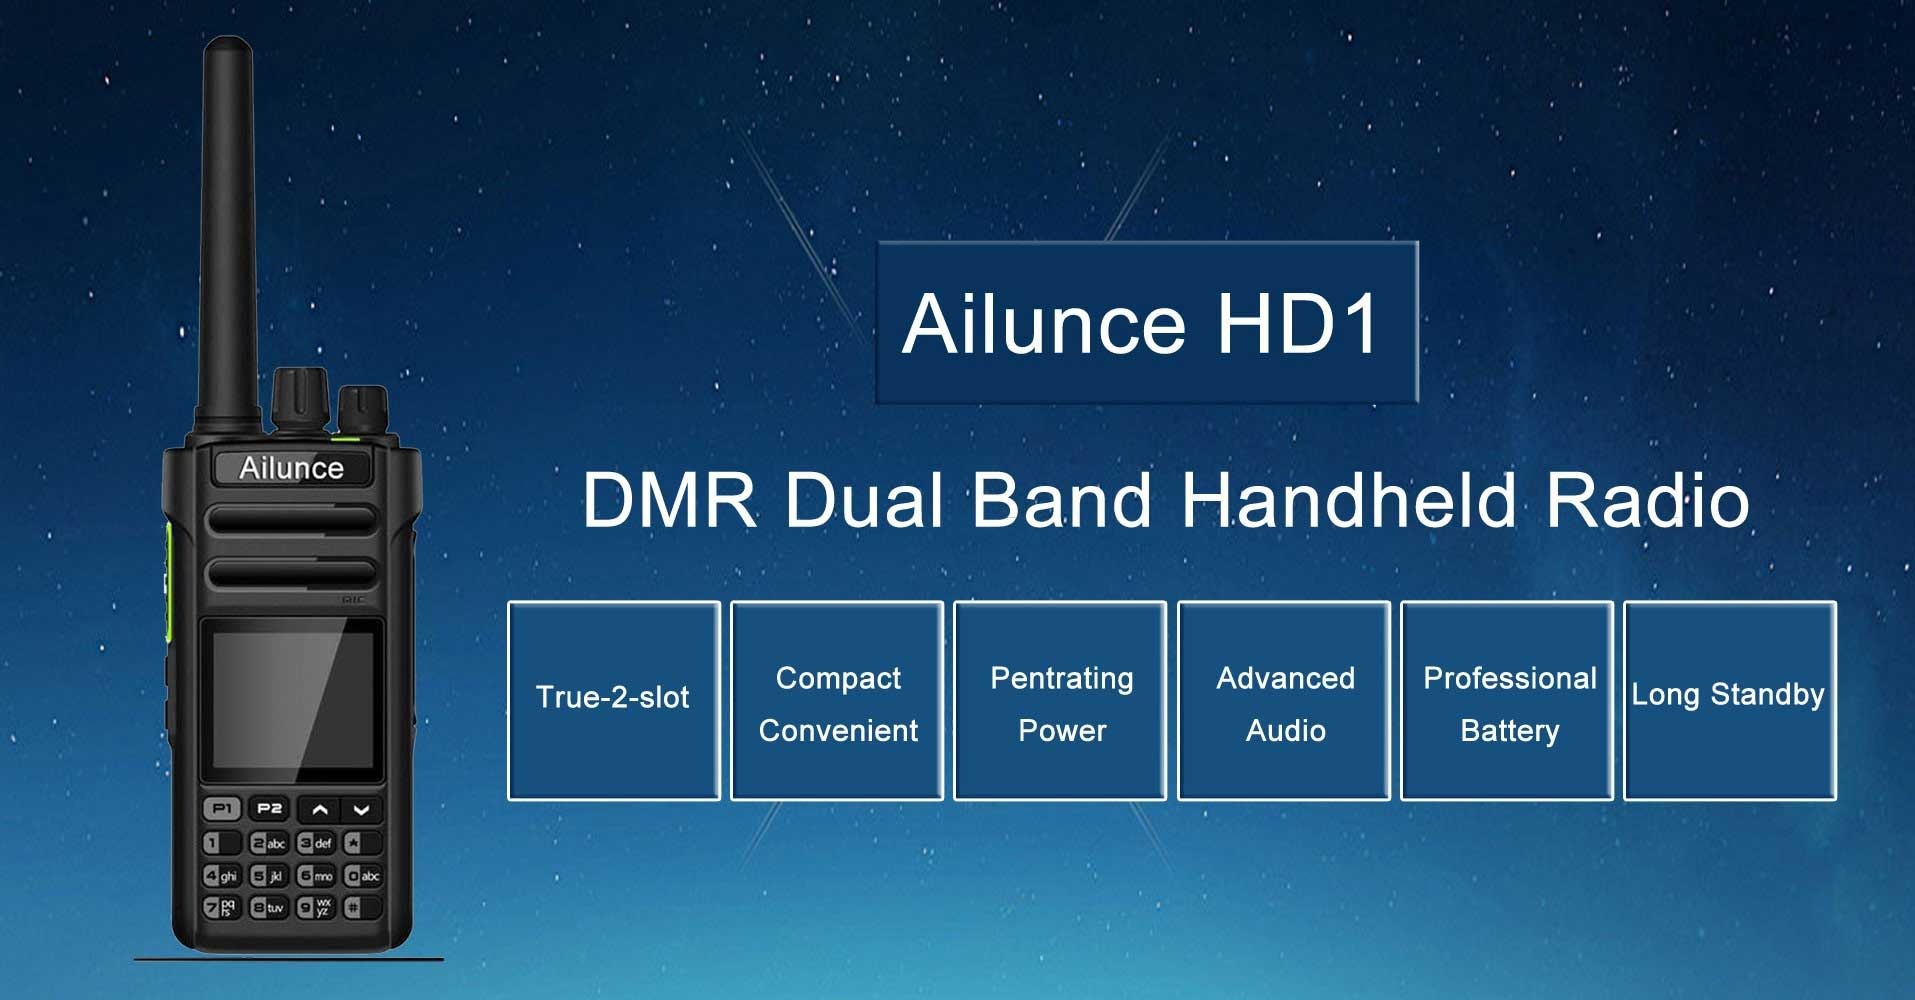 Ailunnce HD1 DMR – Review and how to build a DMR codeplug - iz4wnp